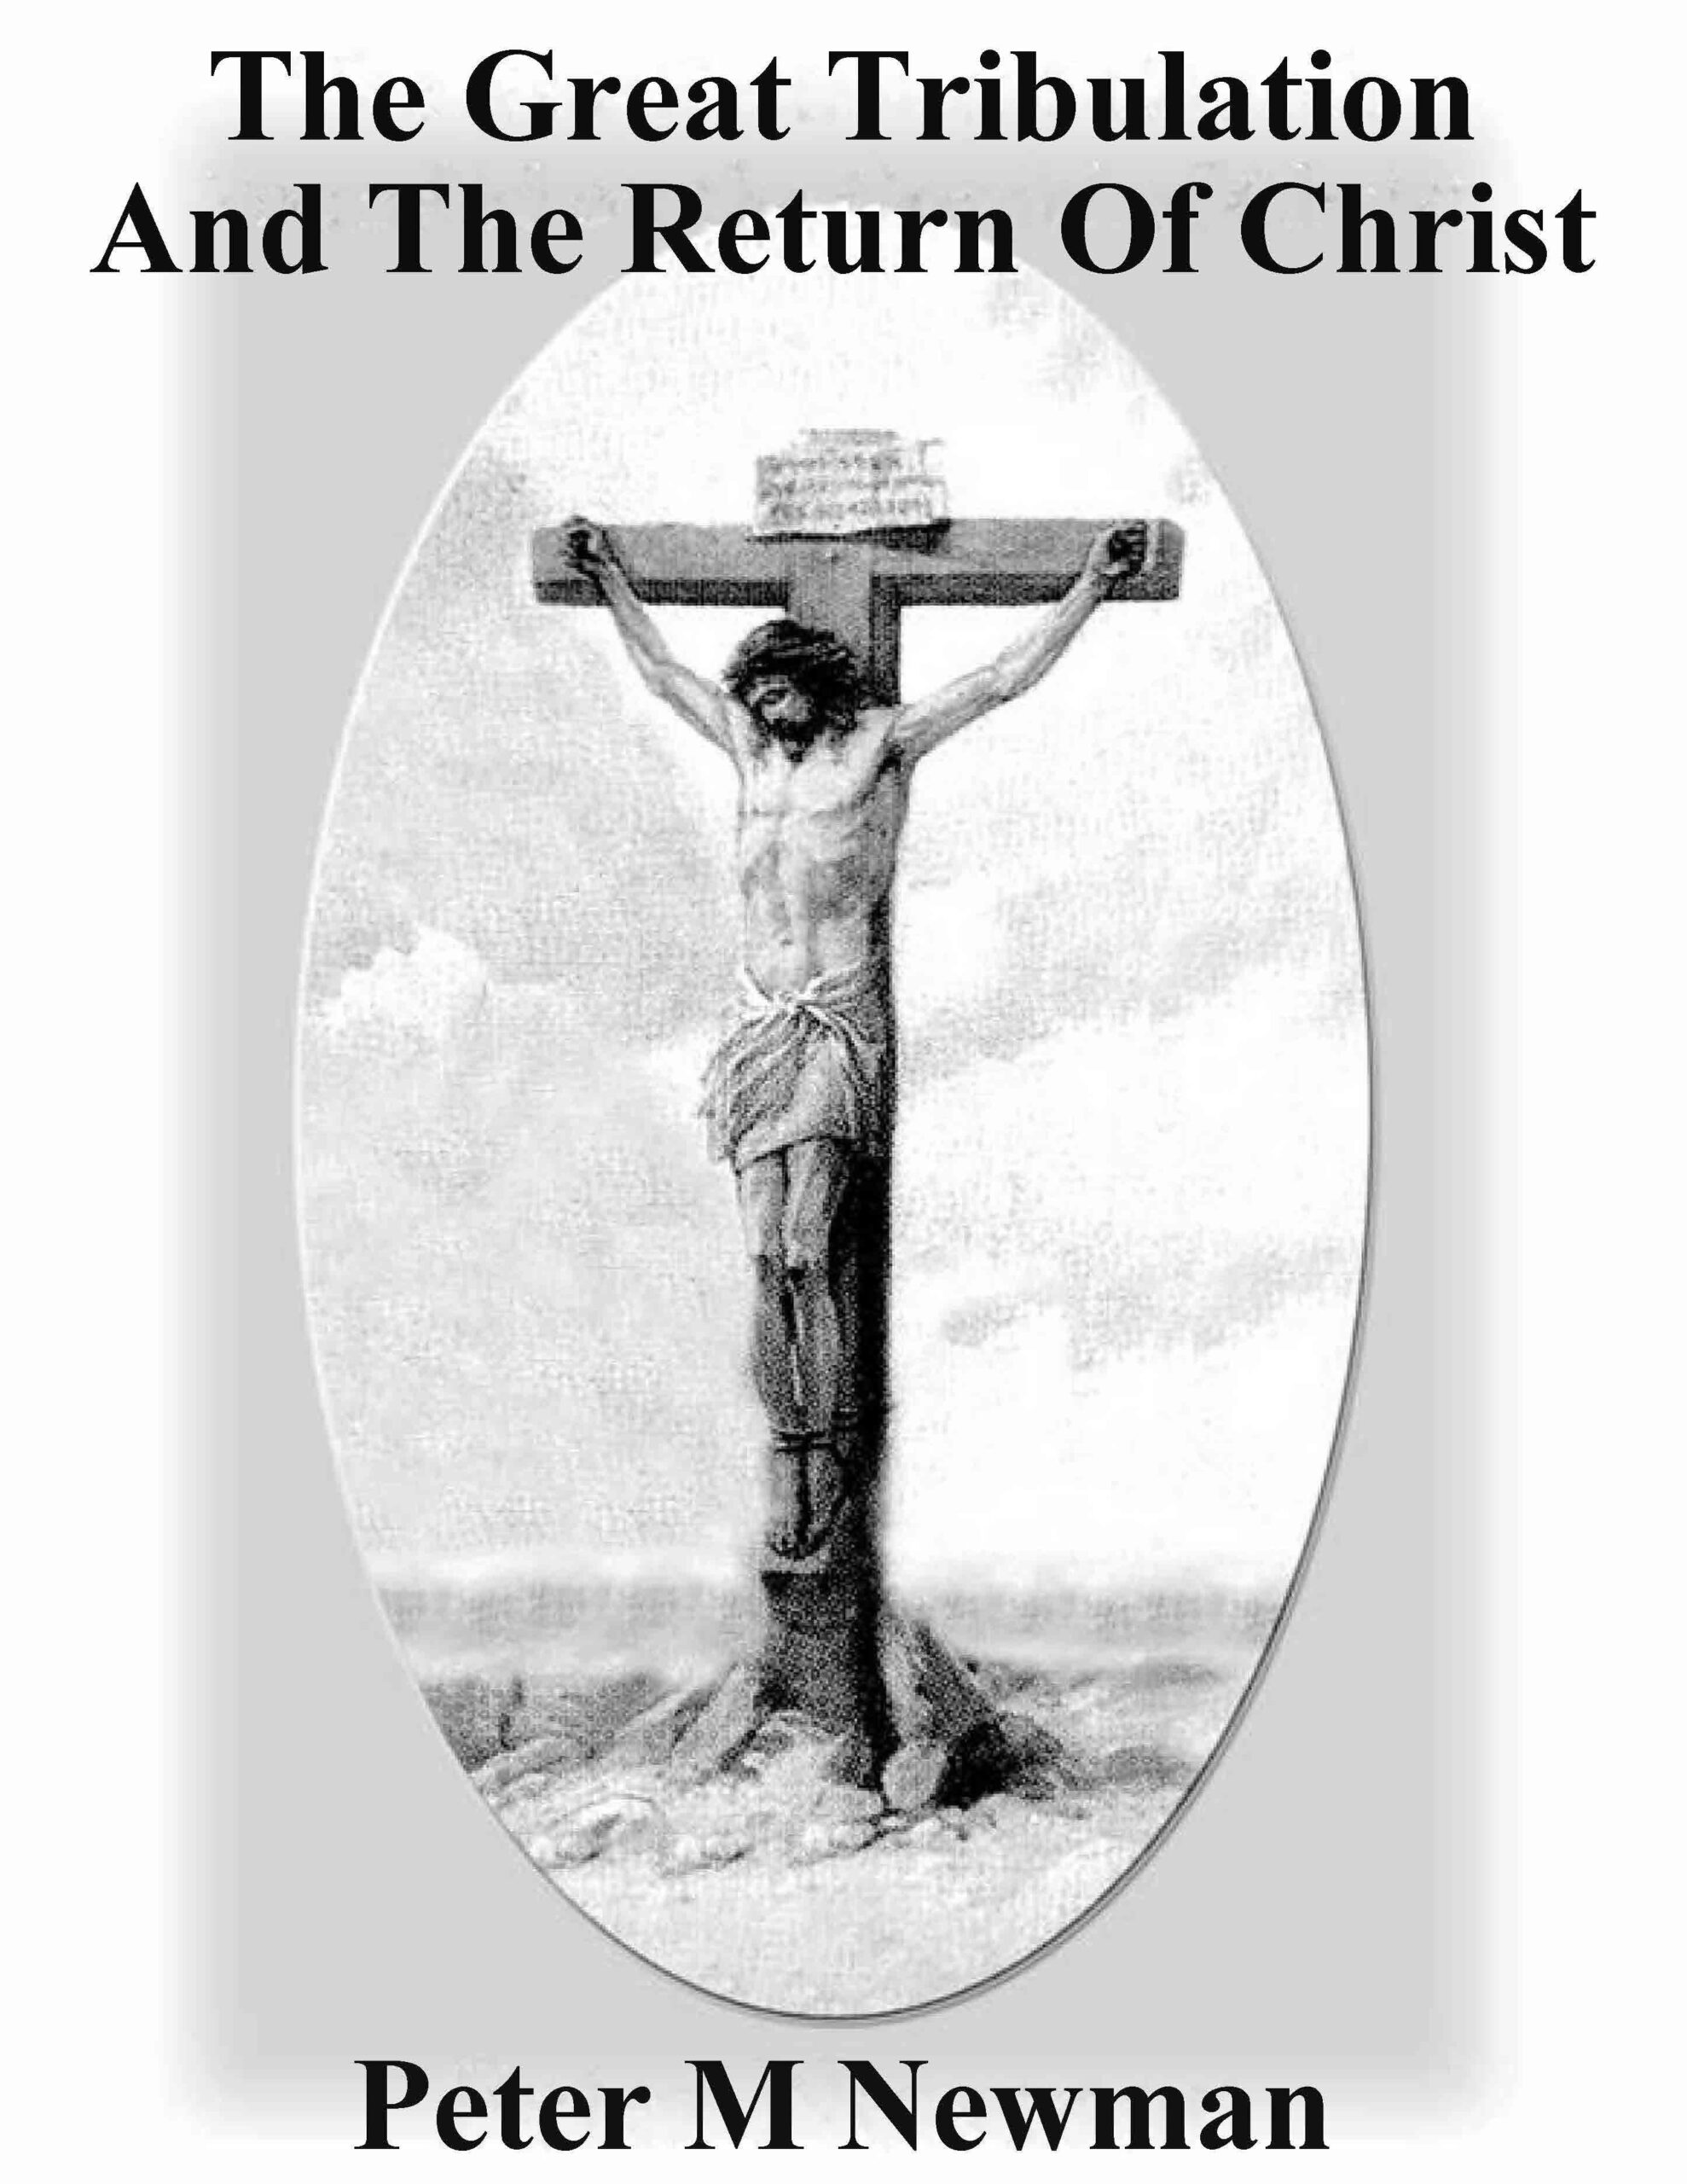 The Great Tribulation and the Return of Christ